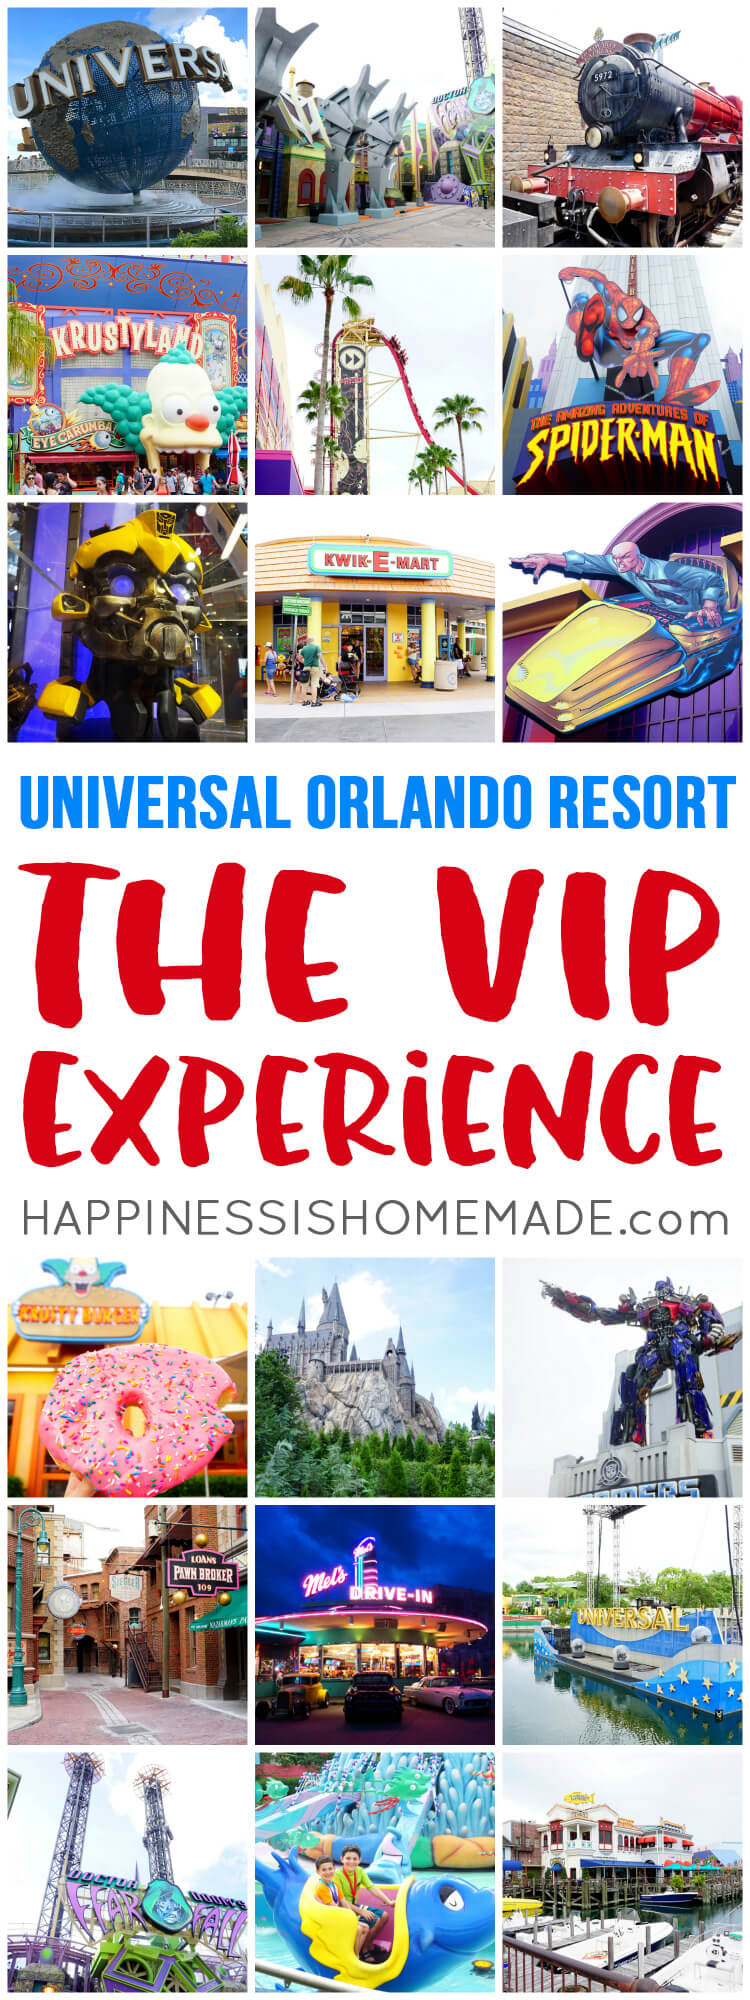 The VIP Experience at Universal Studios Florida and Universal's Islands of Adventure is the most memorable family vacation upgrade EVER! An incredible one-of-a-kind experience at Universal Orlando Resort!